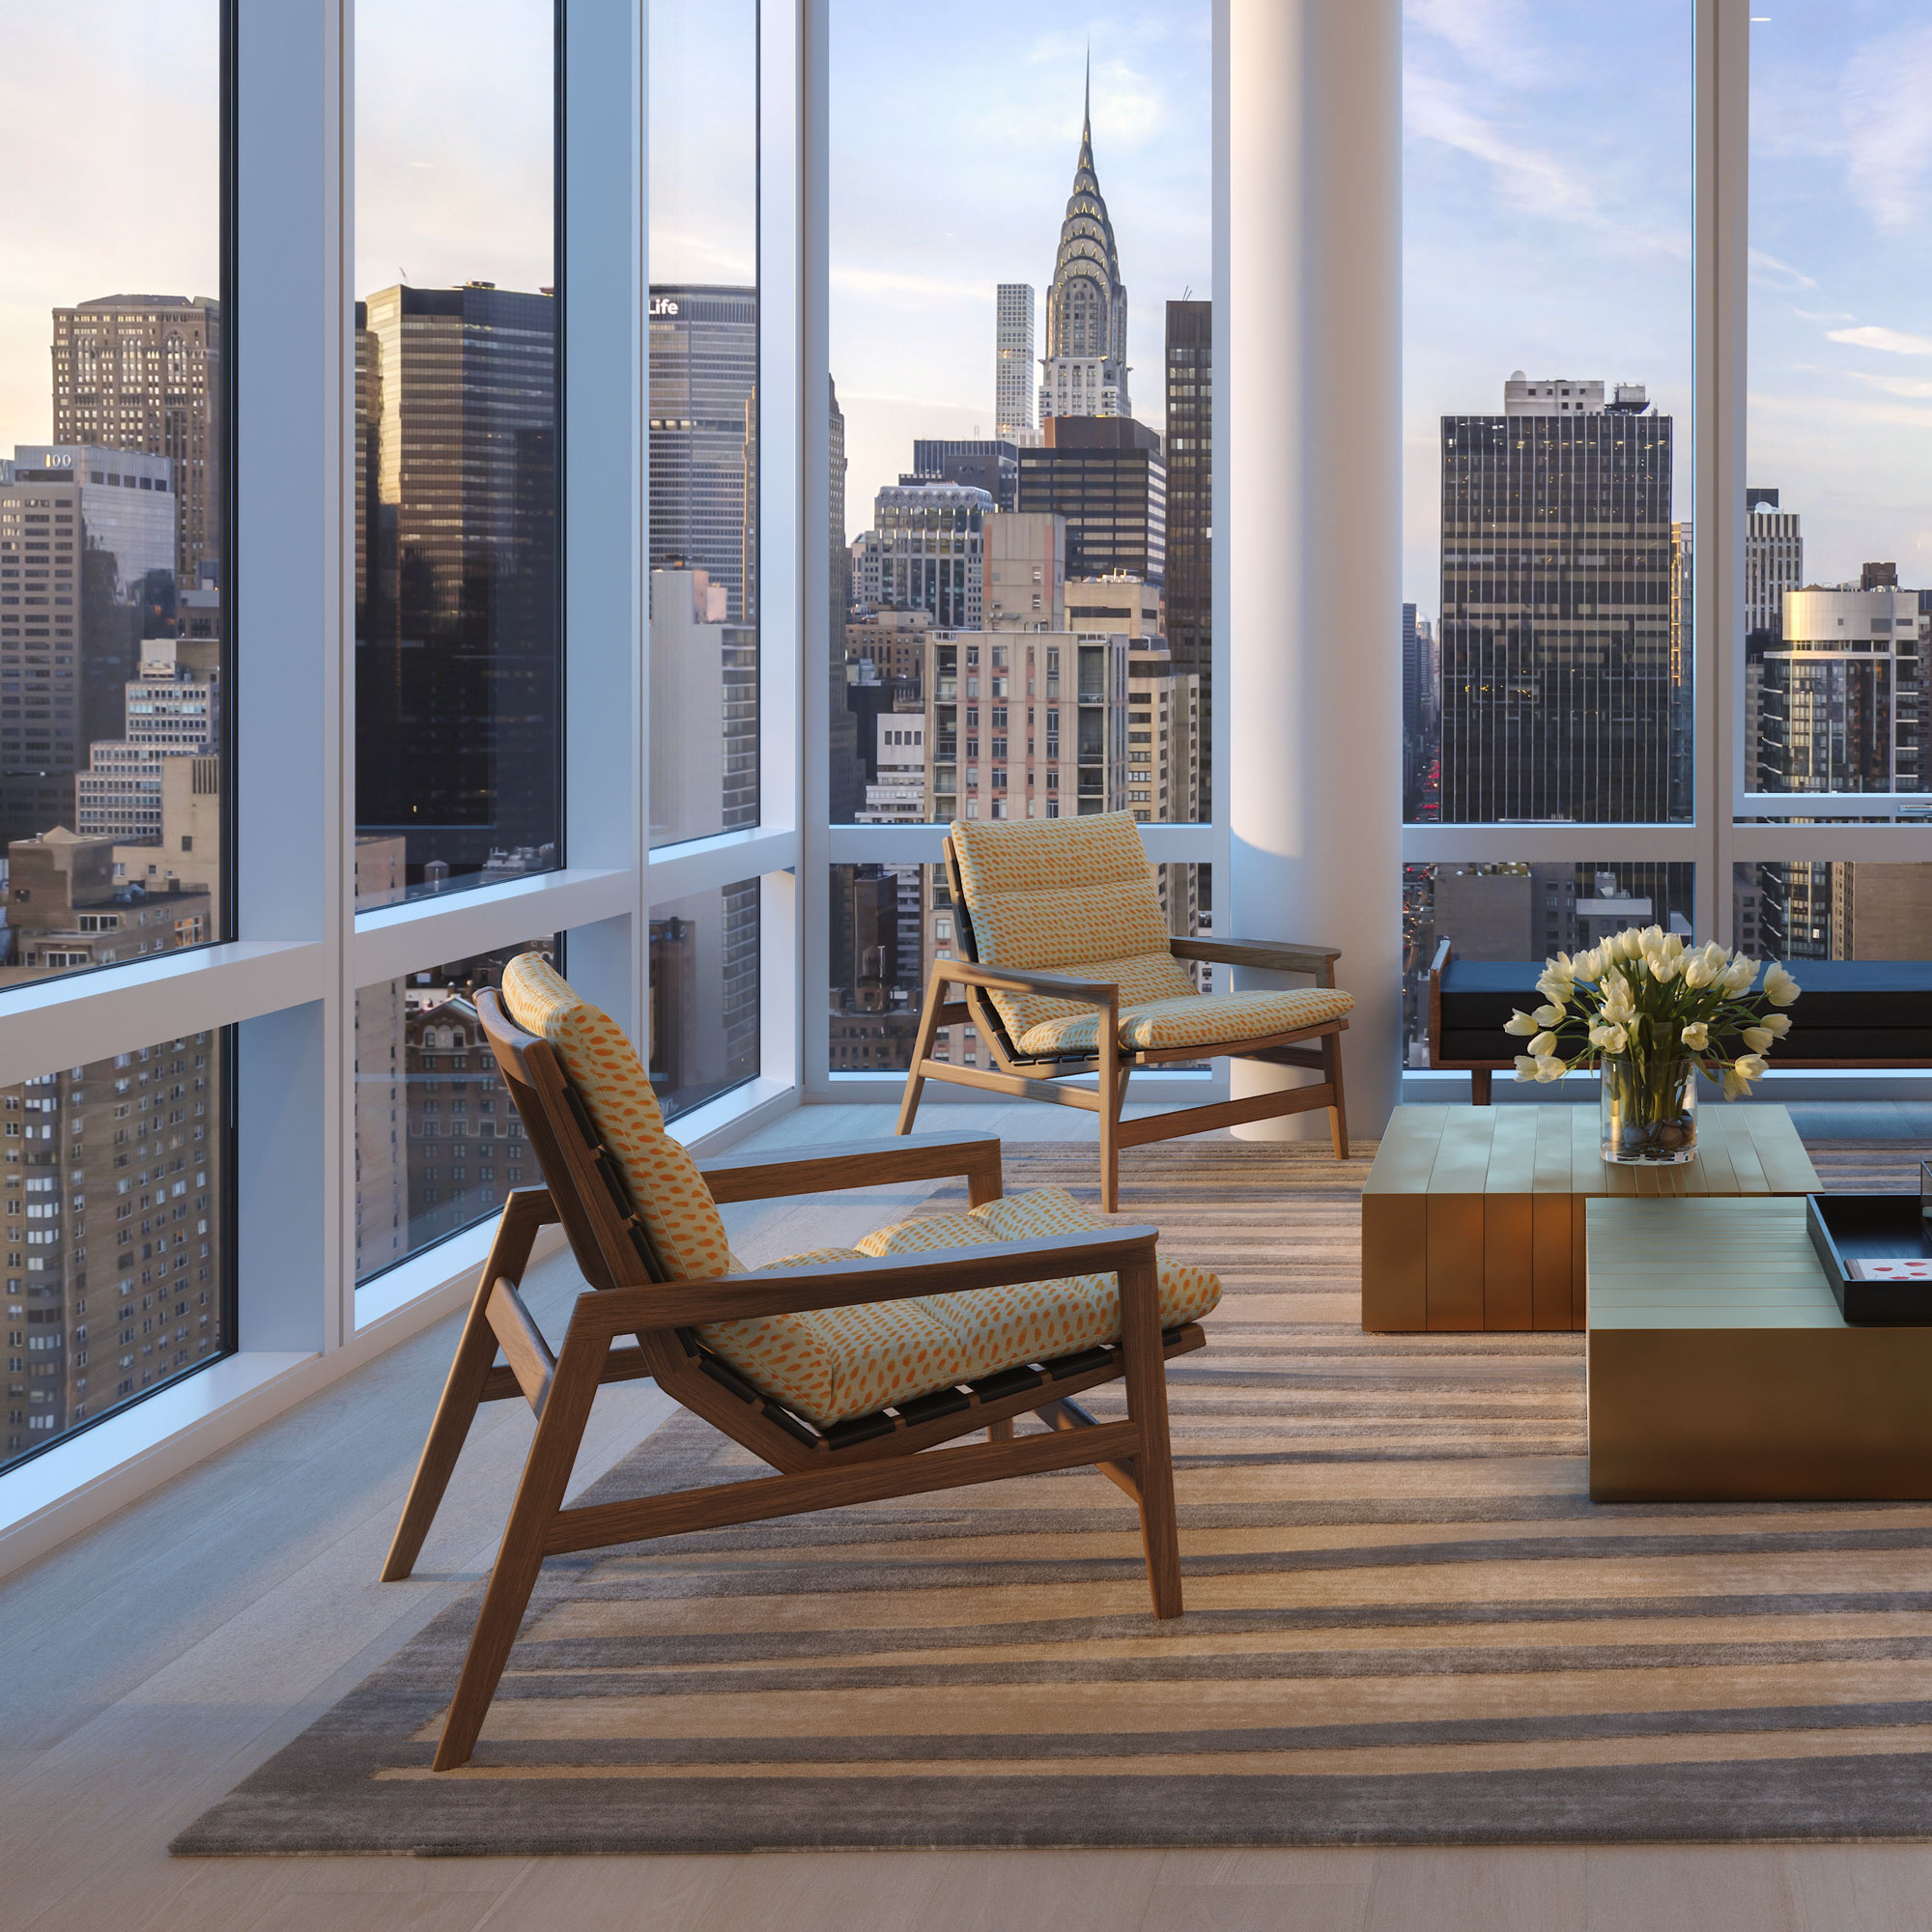 Architectural Rendering of the living room of the Eastlight building project located on the Kips Bay neighborhood in New York City